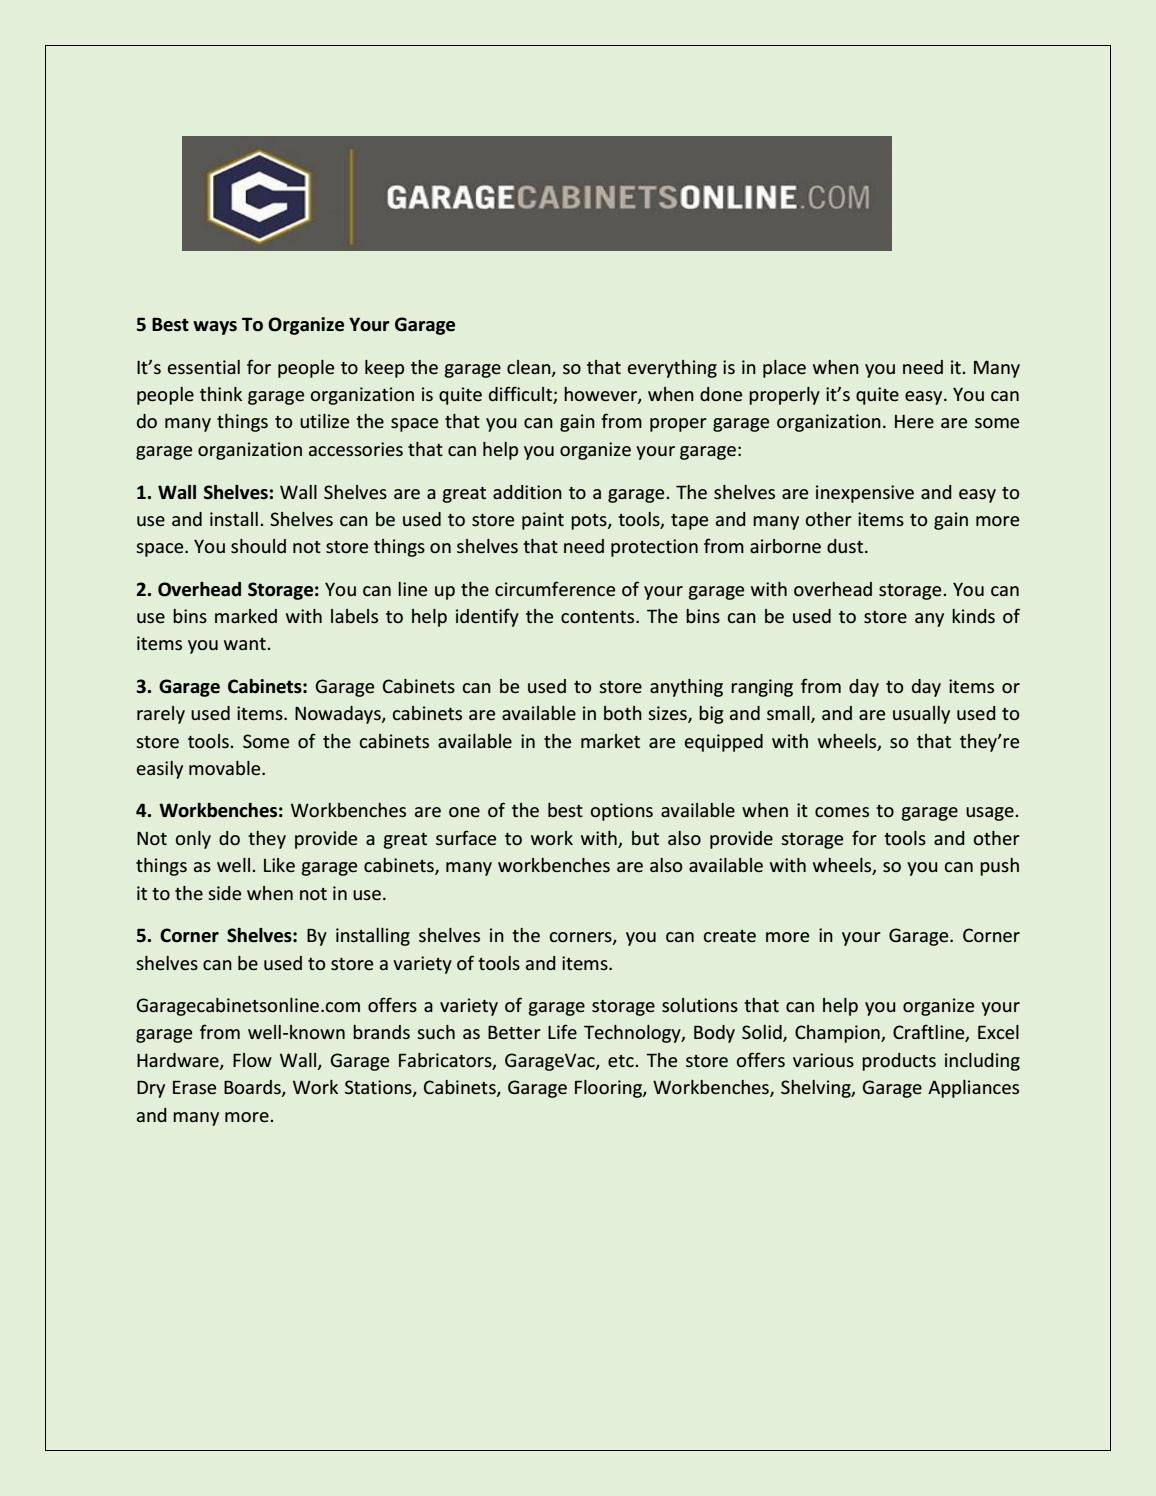 Awe Inspiring 5 Best Ways To Organize Your Garage By Garagecabinetsvideos Ocoug Best Dining Table And Chair Ideas Images Ocougorg